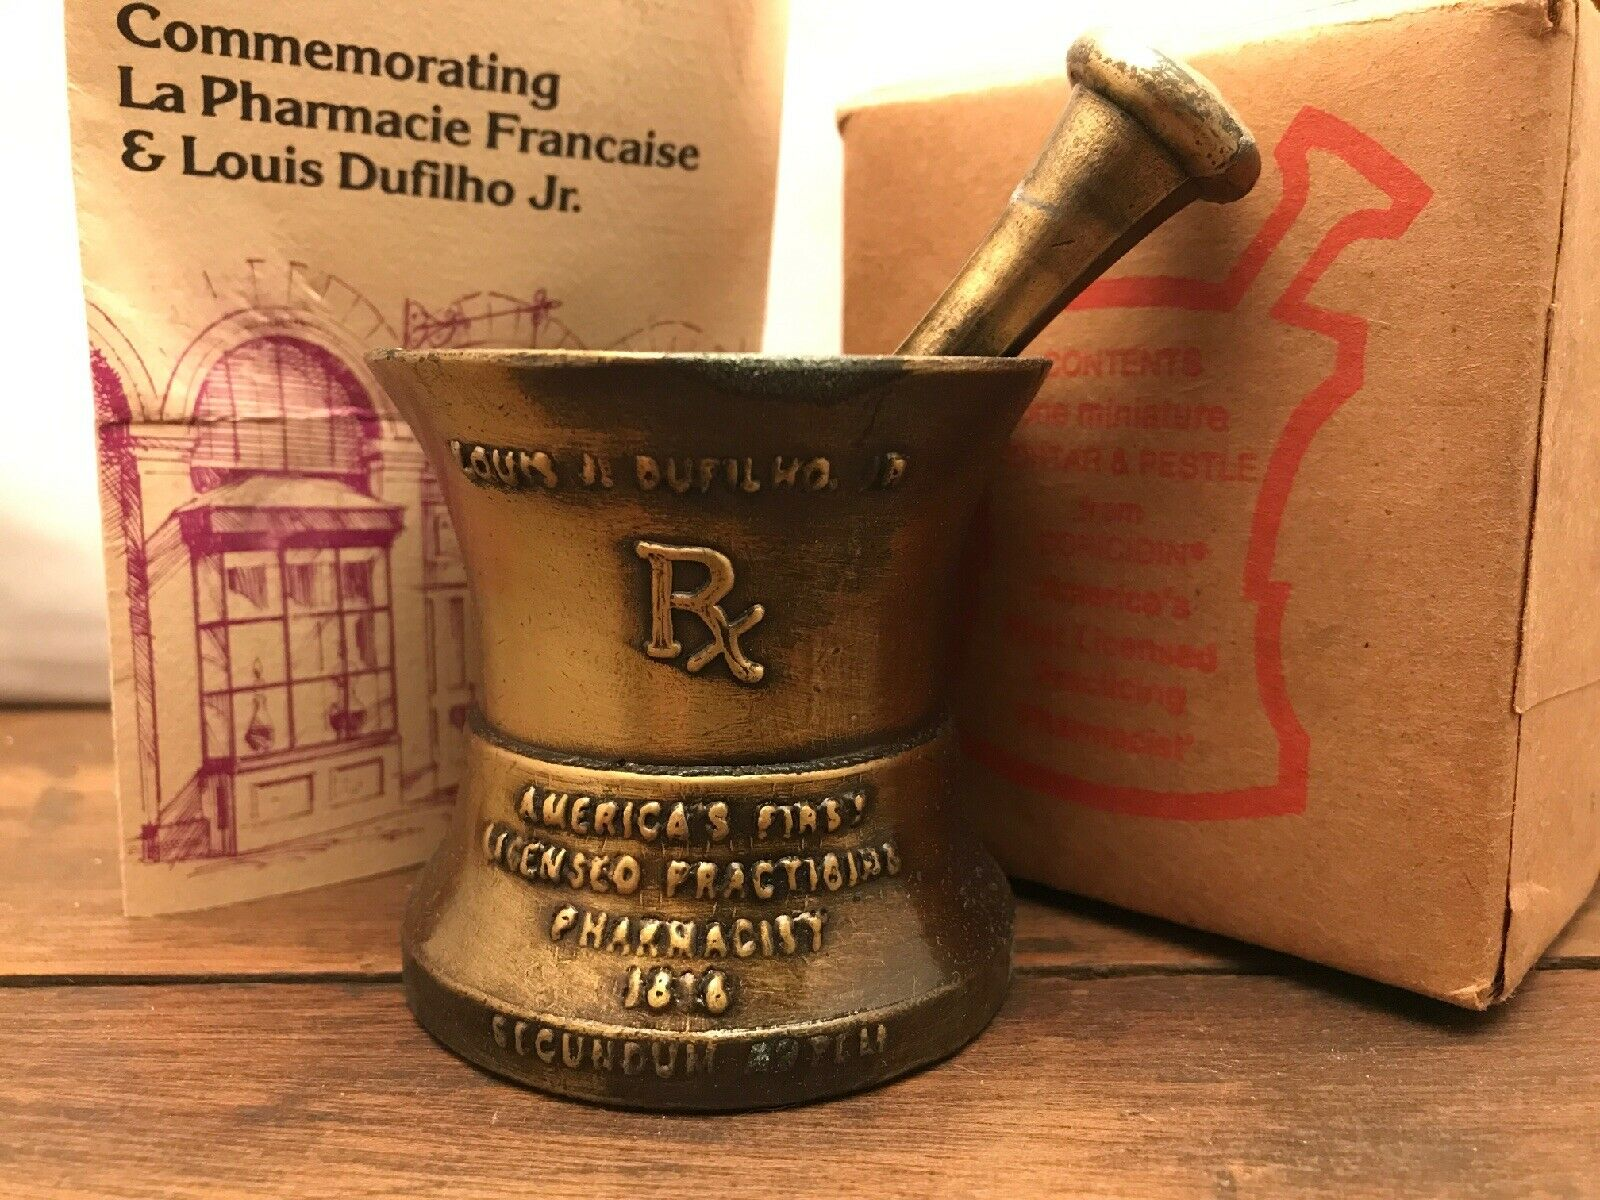 Apothecary Collectible Mini Mortar & Pestle First Licensed Practicing Pharmacist